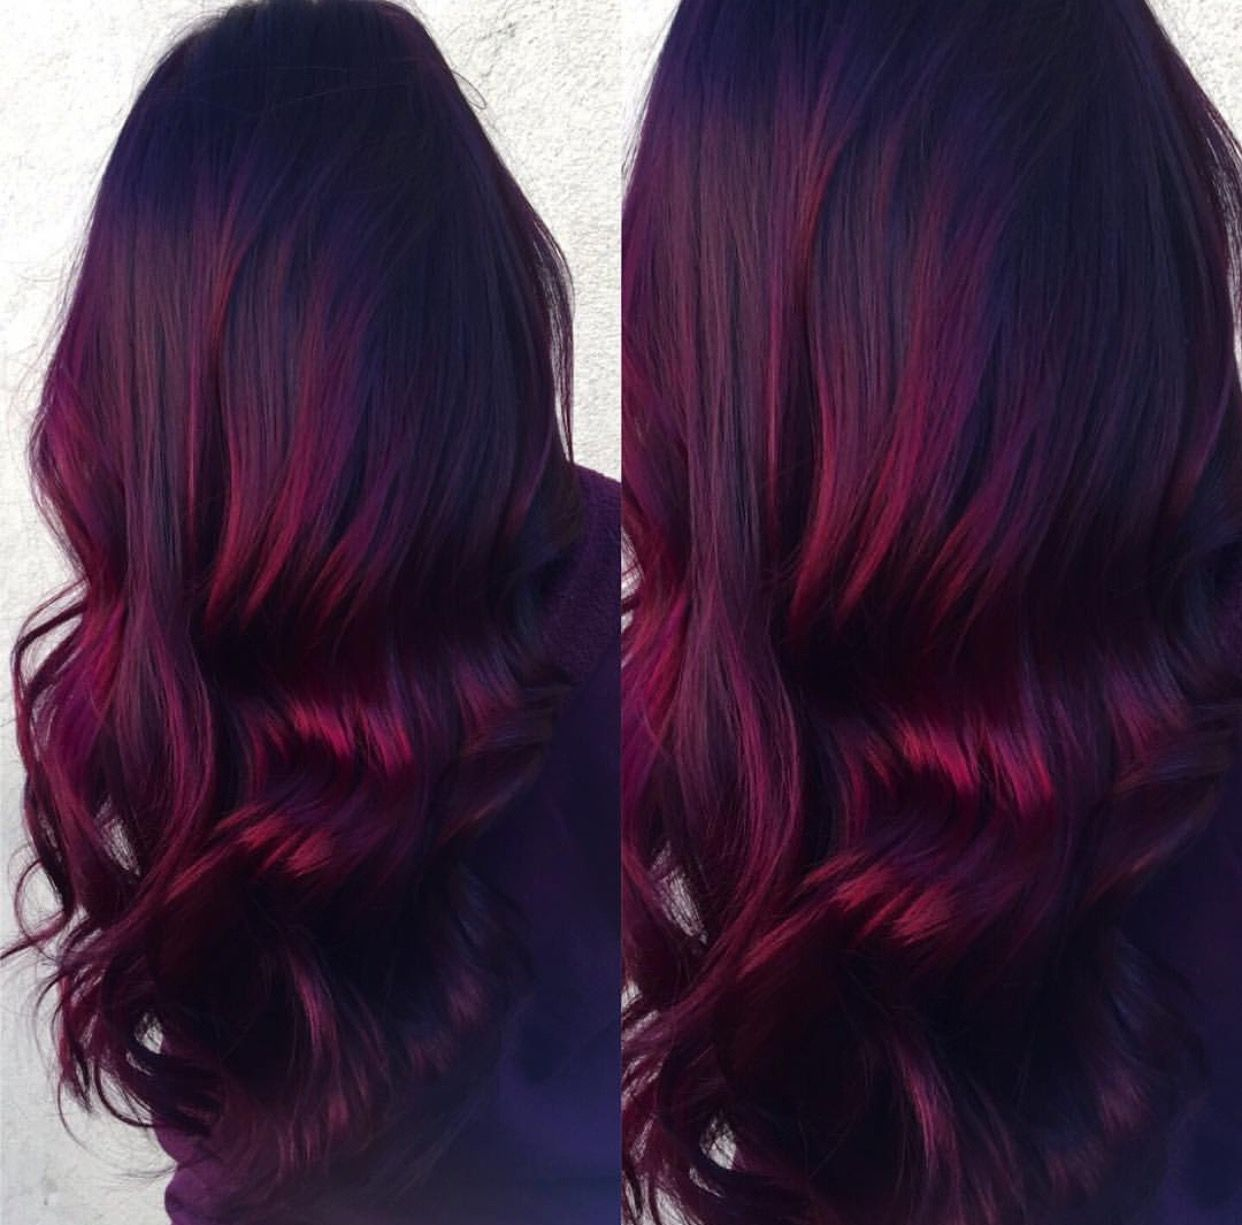 Picture of black and magenta balayage hair - Red Velvet Balayage Dark Roots With Vibrant Burgundy Ends Done By Ren E Spinale Magenta Hairred